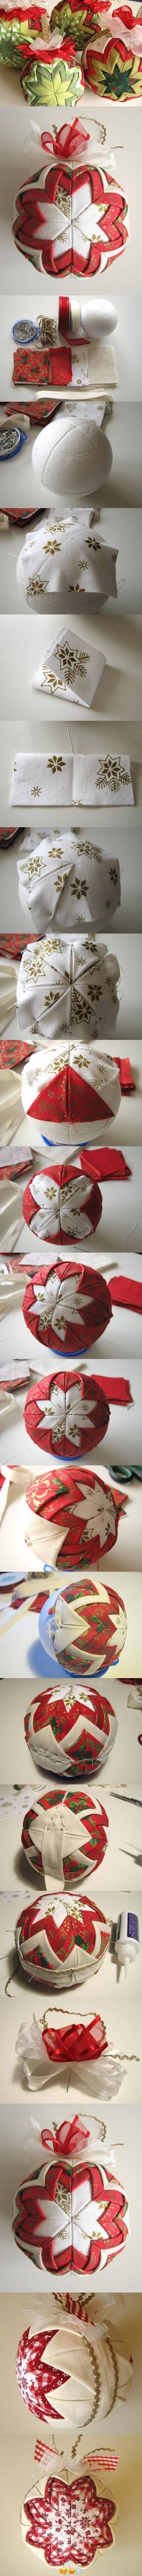 Quilted ornaments...utterly GORGEOUS!!!!!  (my newest passion, I swear)  Photo tutorial